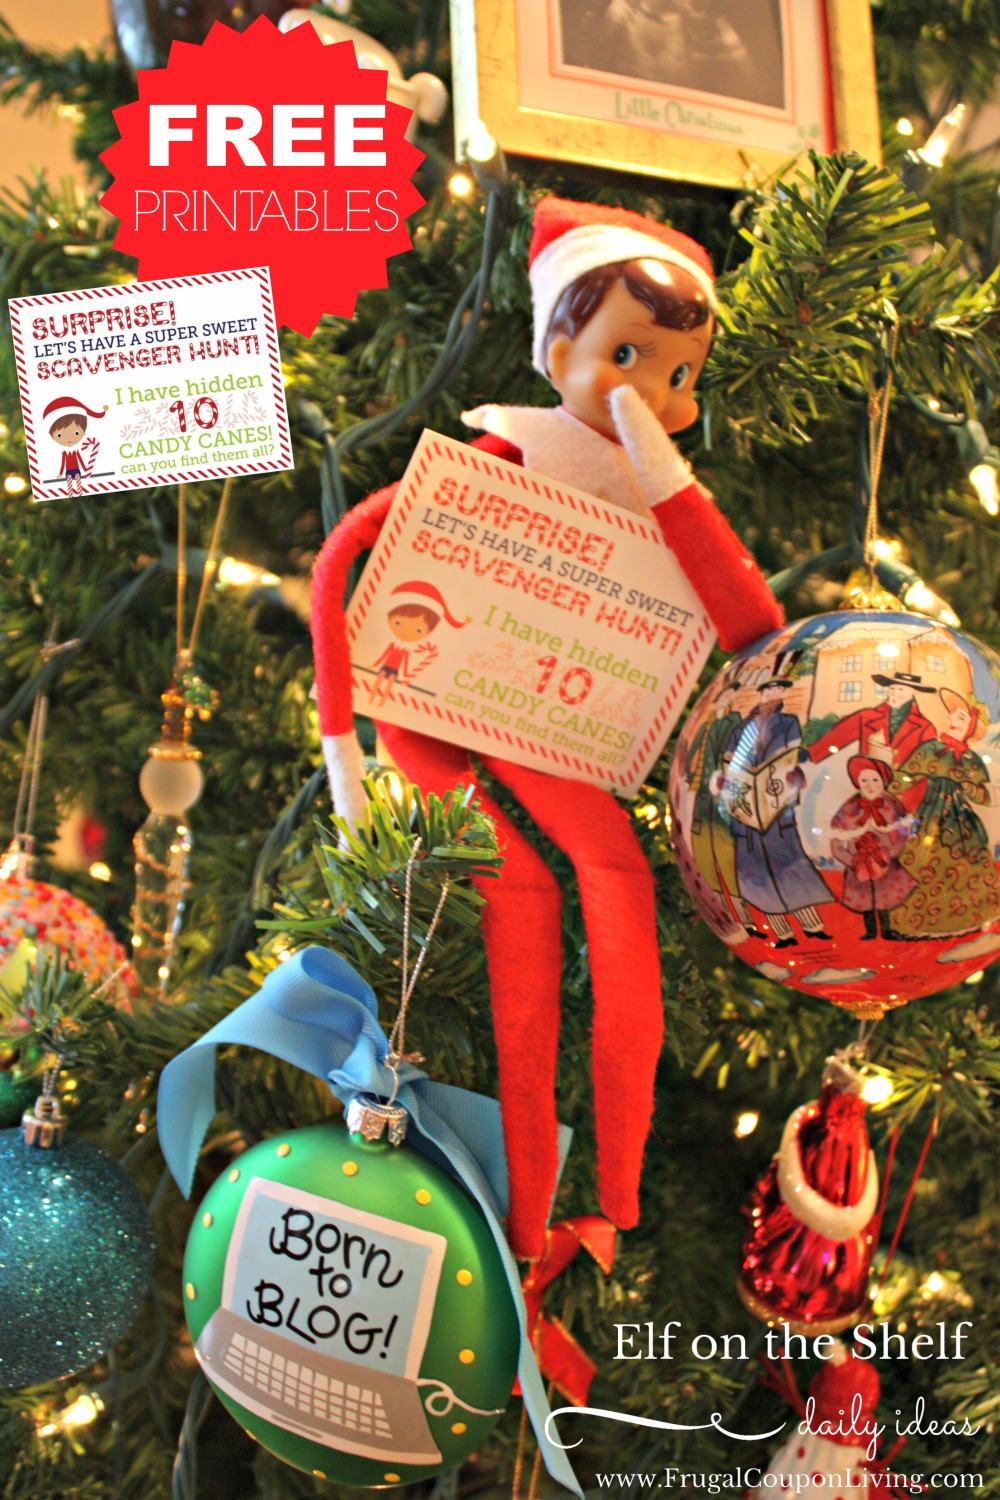 hidden-candy-canes-elf-on-the-shelf-ideas-printable-frugal-coupon-living